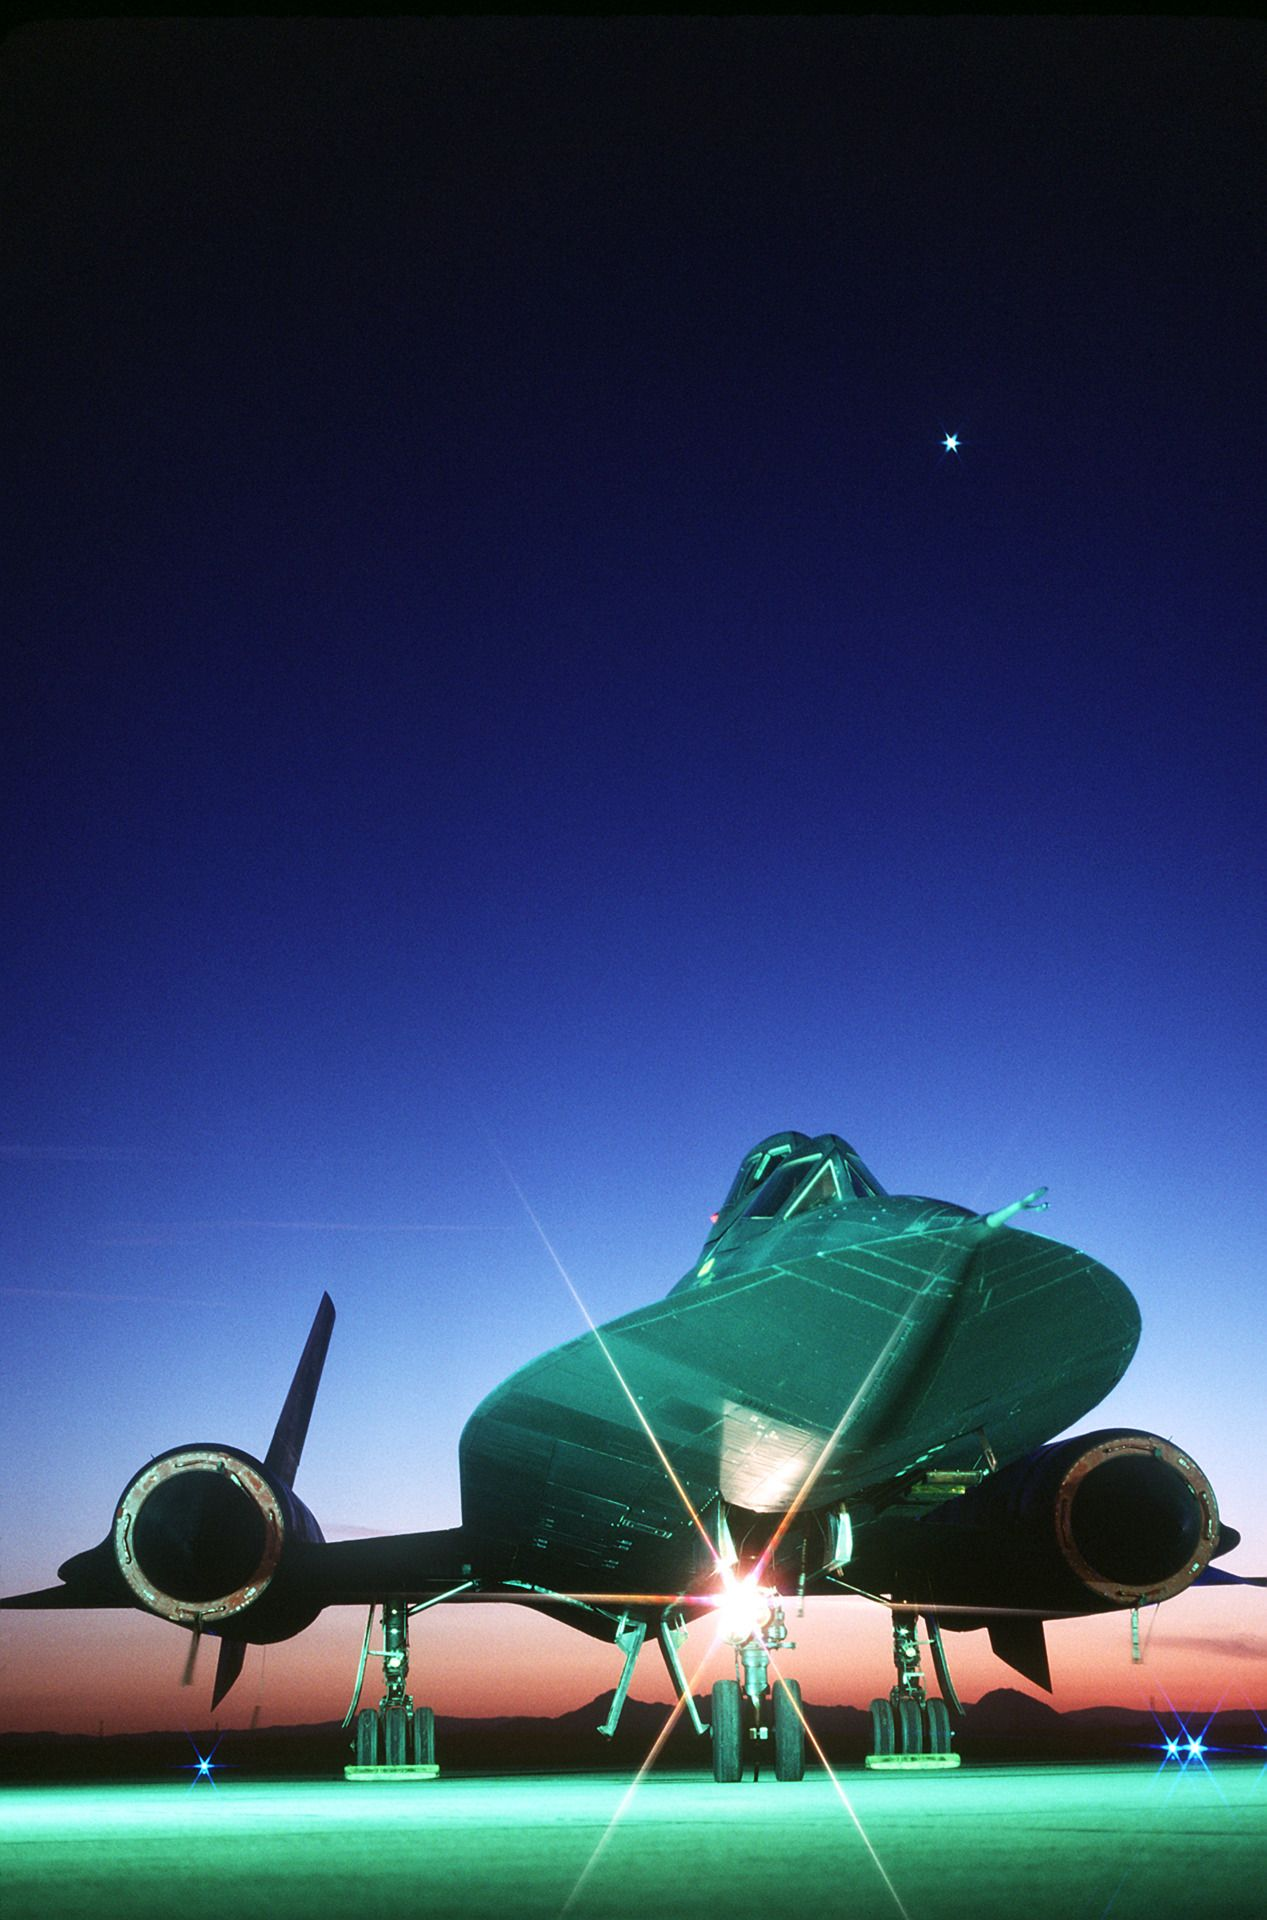 A front view of an SR-71B Blackbird strategic reconnaissance training aircraft on the runway at sundown. Photo: TSGT Michael Haggerty. Location: BEALE AIR FORCE BASE. Date Shot: 6/1/1988.